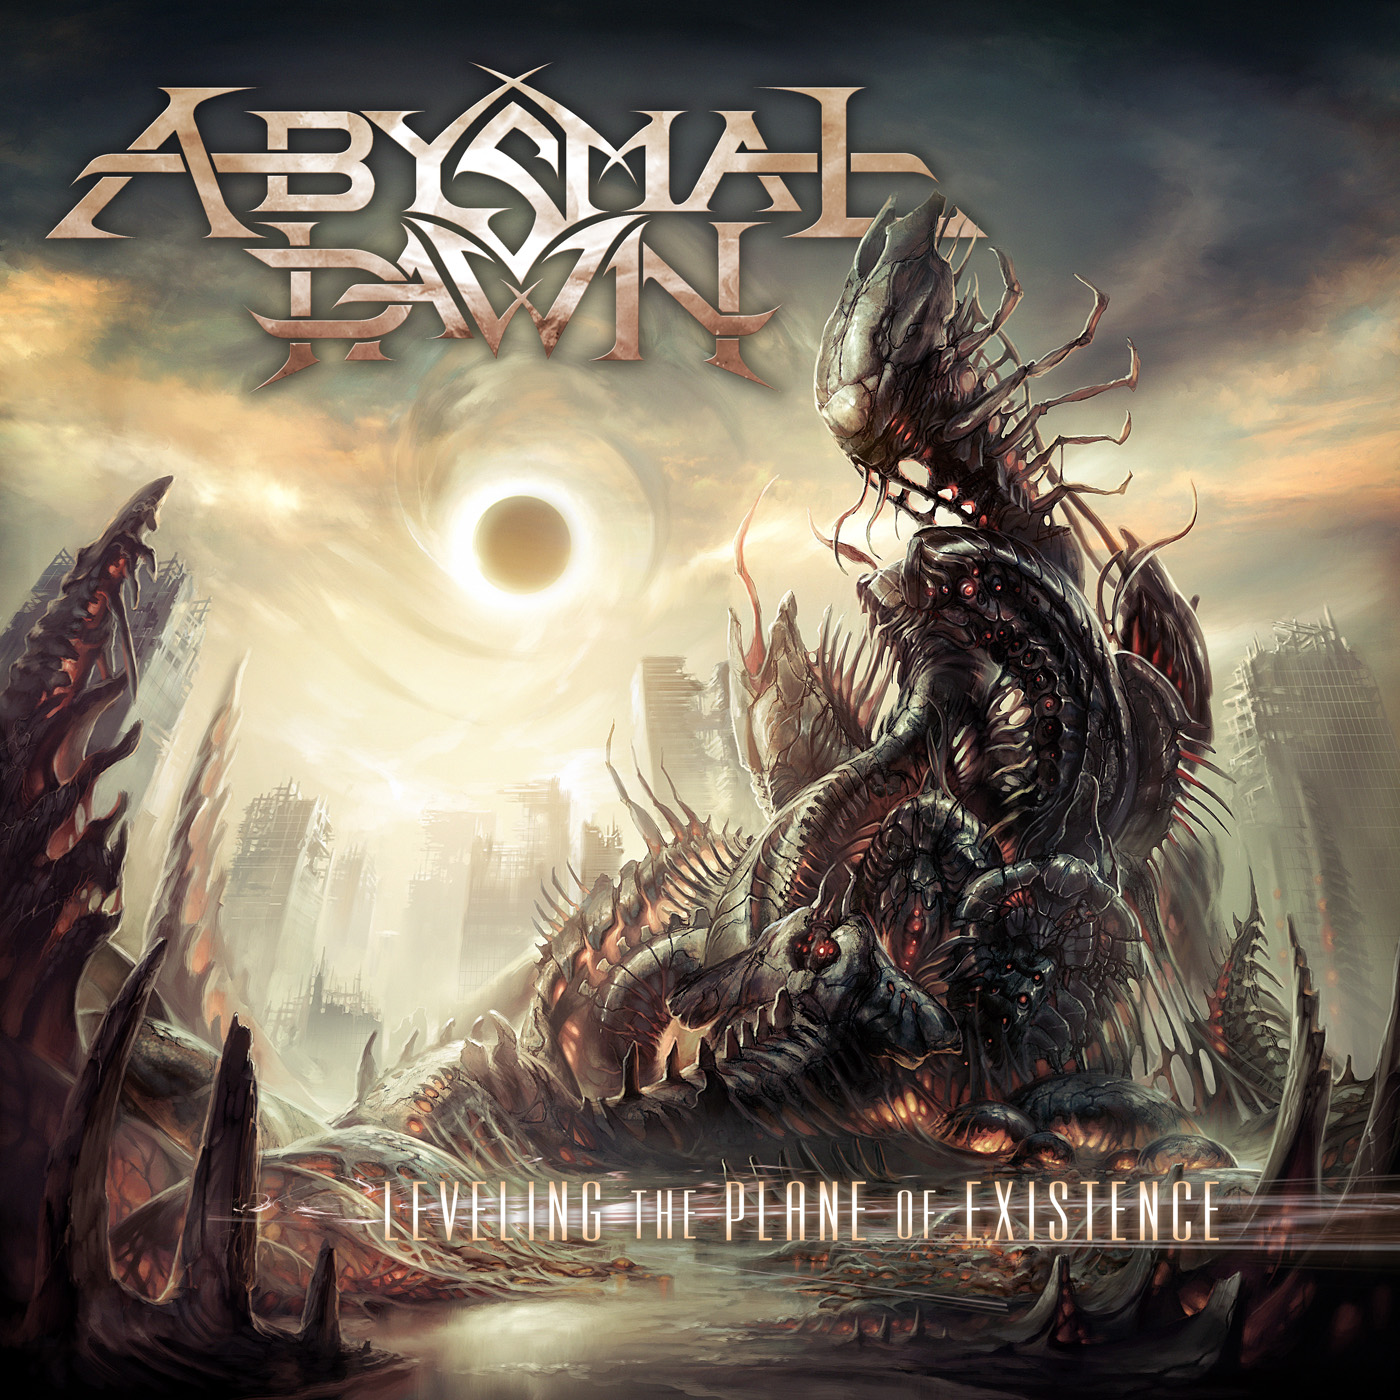 Abysmal Dawn – Leveling the Plane of Existence Review